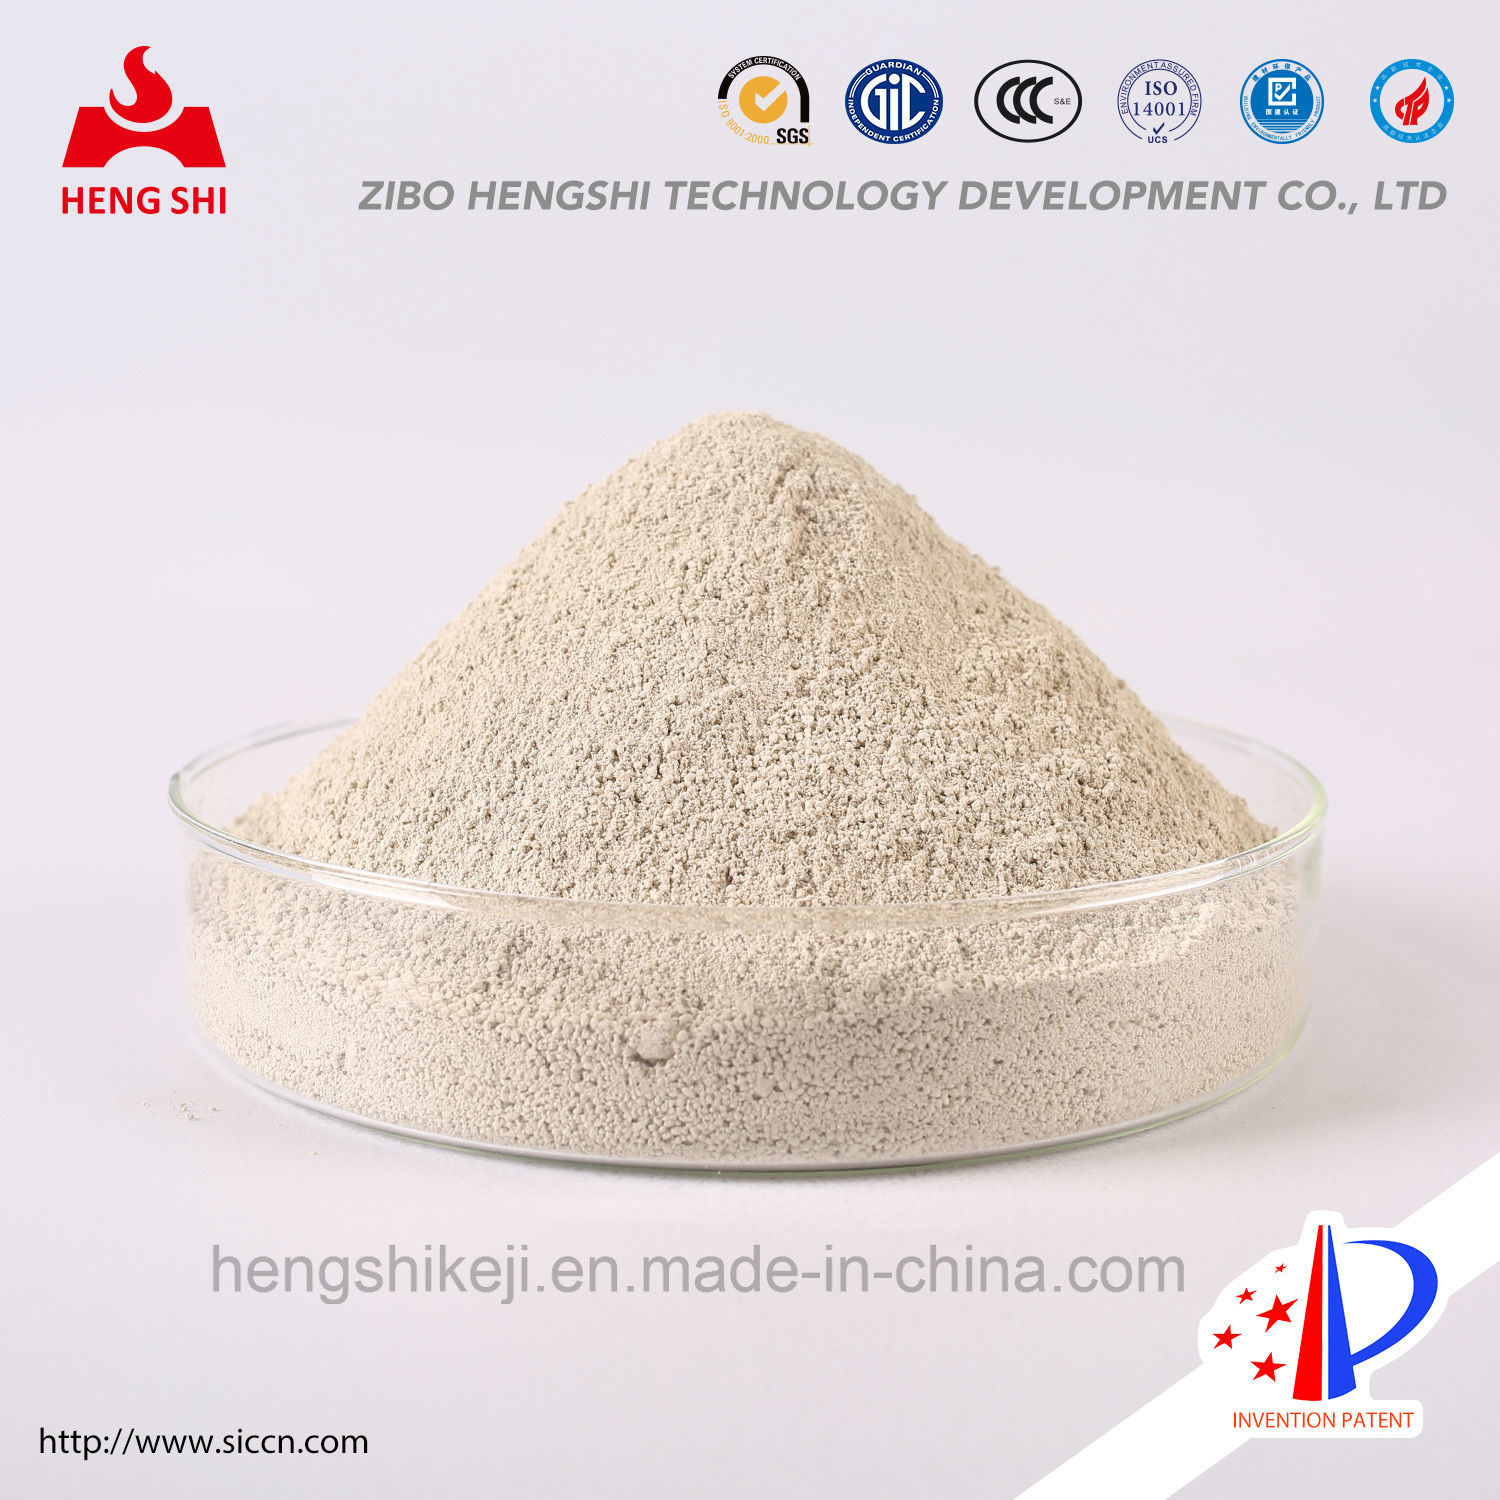 7000-8000 Meshes Silicon Nitride Powder